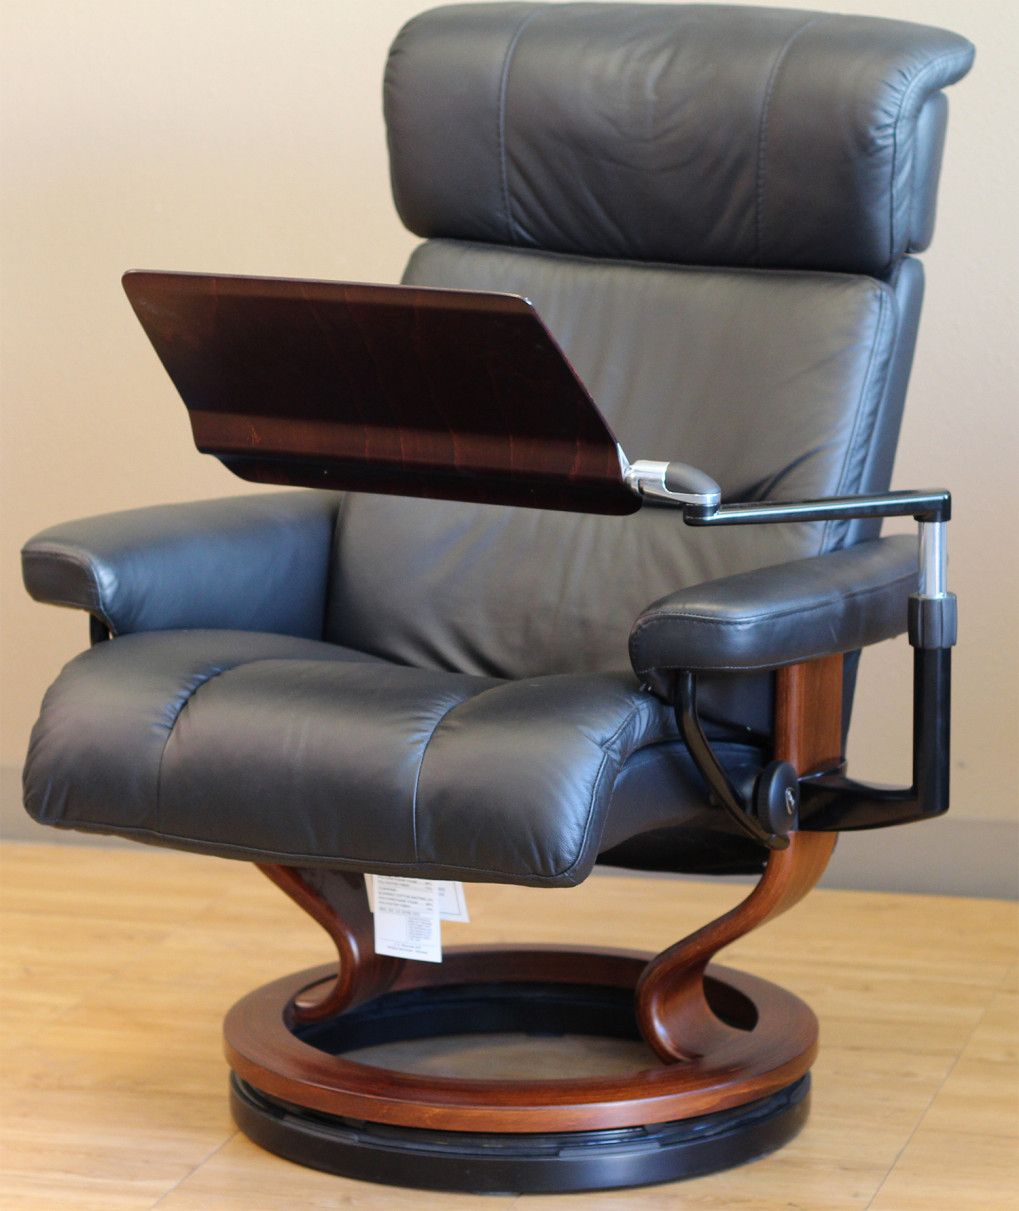 Exceptionnel Laptop Desk For Recliner Chair   Modern Home Office Furniture Check More At  Http:/